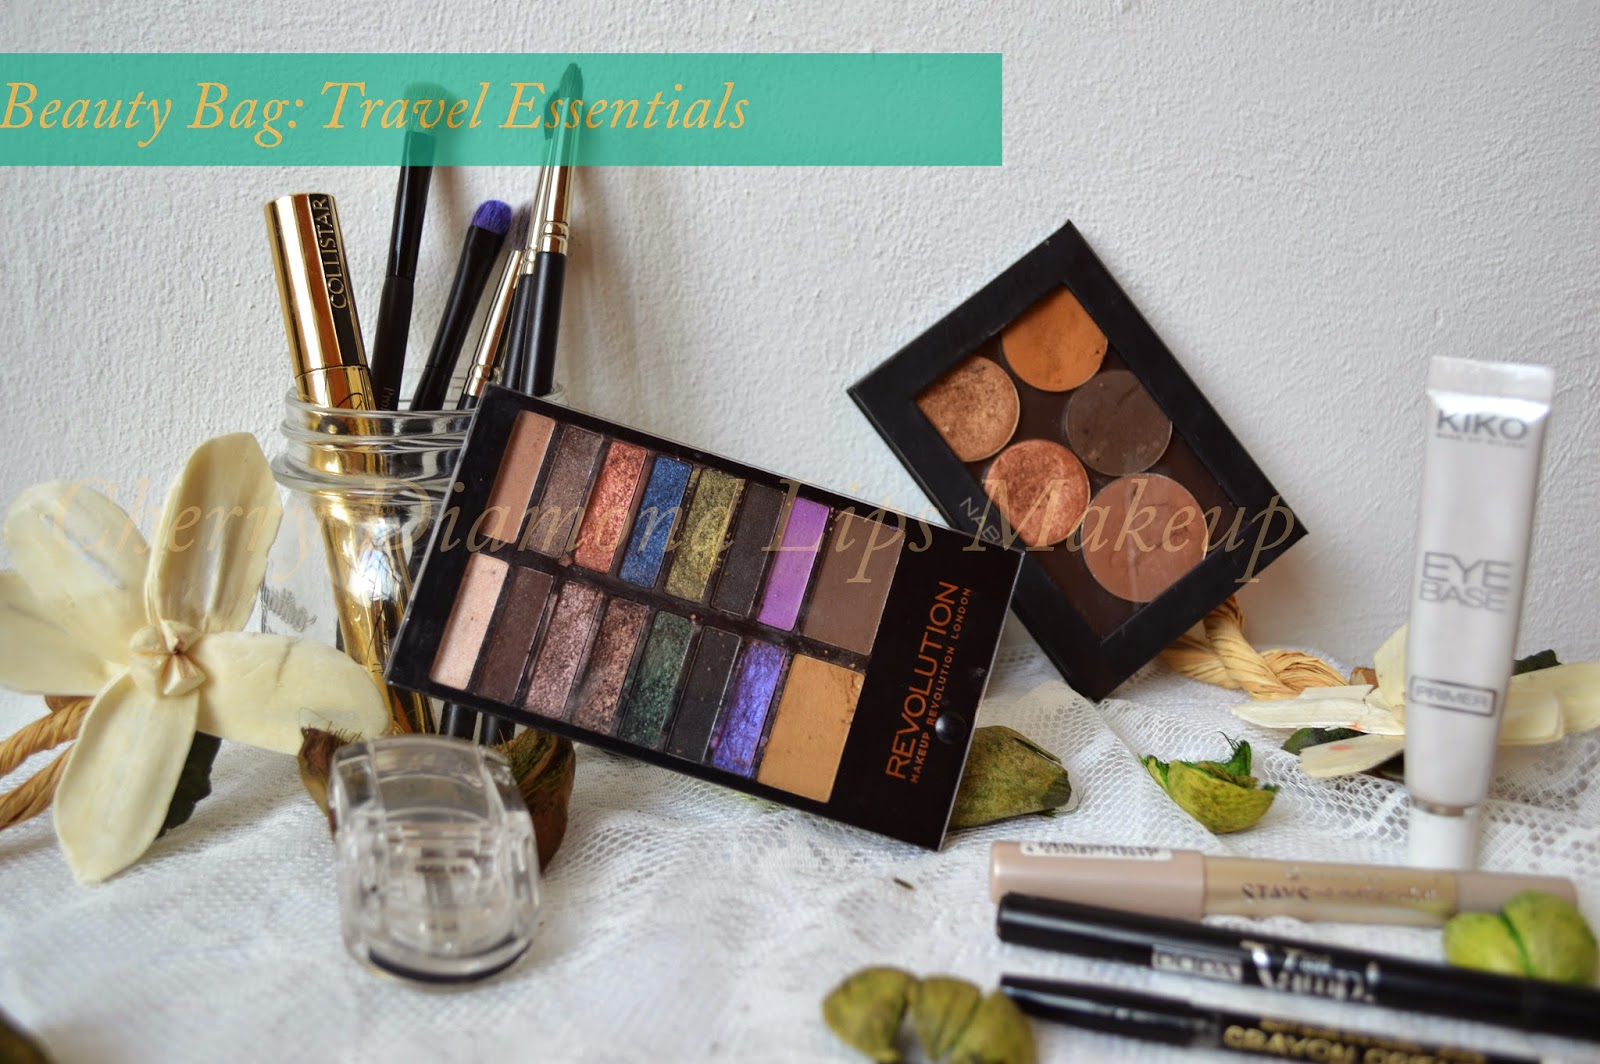 Summer Beauty Bag, Makeup Revolution, Lock&load, Liberty Six, Nabla Comsetics, Rust, Glitz, Caramel, Camelot, Infinity Eyeshadow, Kiko, 204, Hakuro, Eye Base Kiko, Essence, Maybelline, The Browliner, Dolce&Gabbana, Pupa